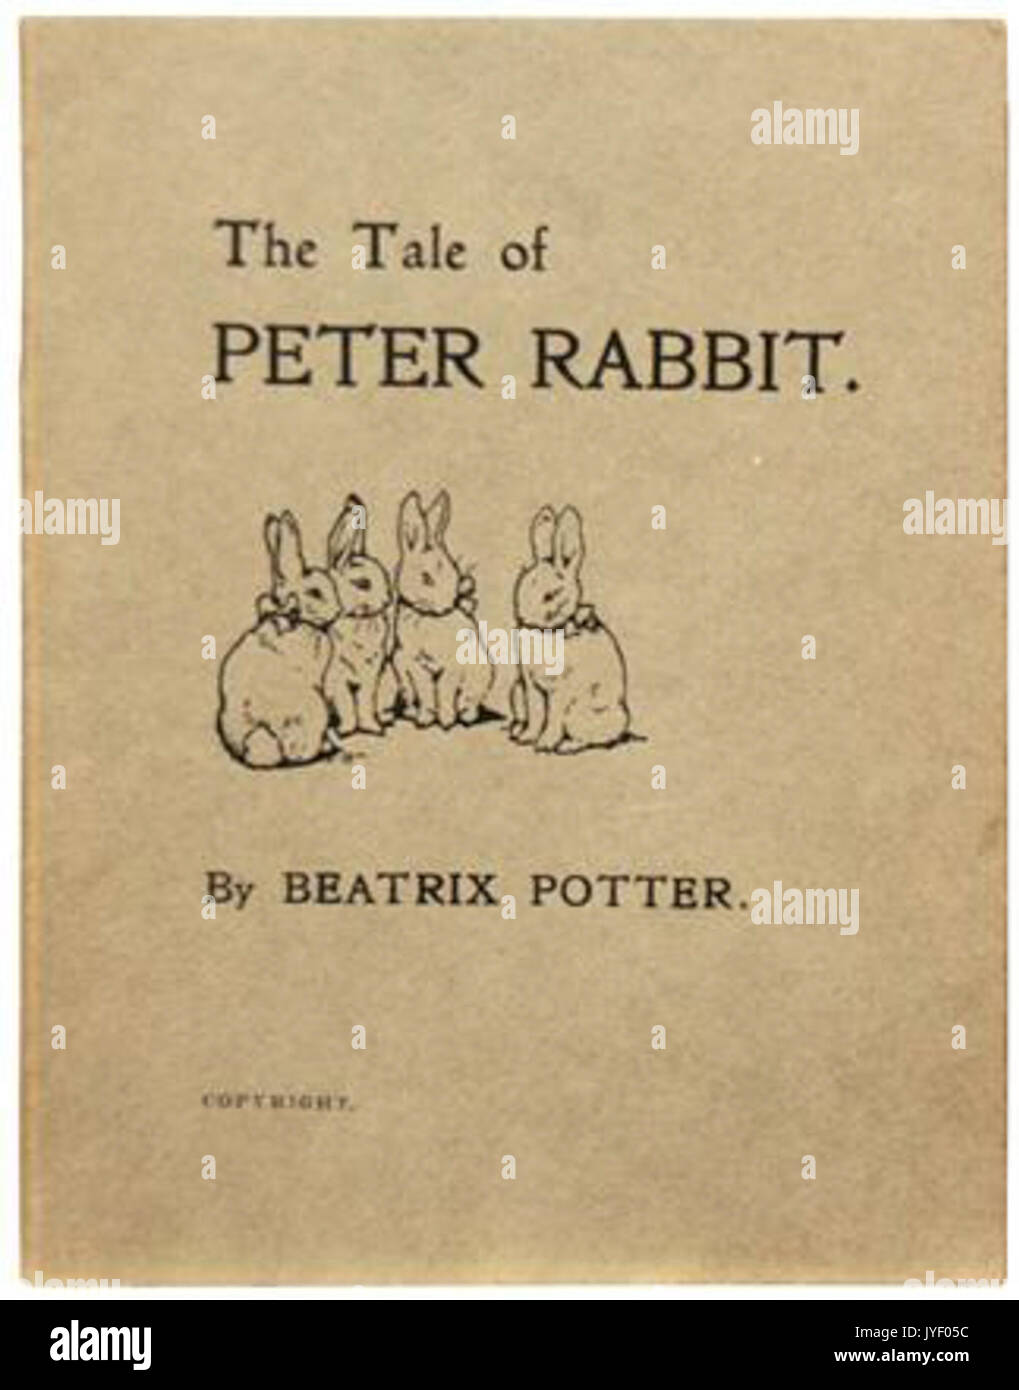 The tale of peter rabbit (1902, first commercial edition) by.